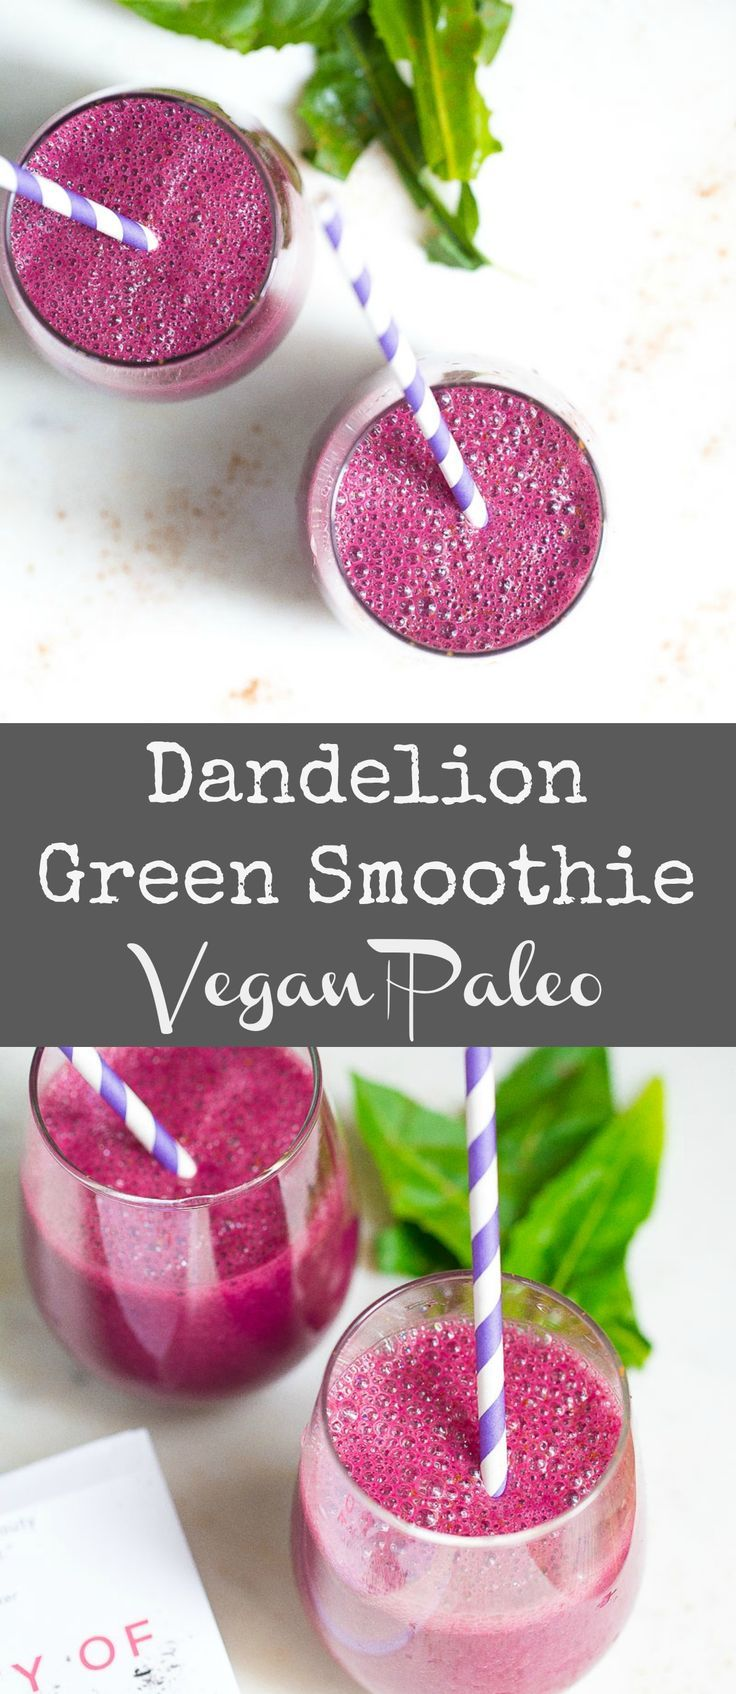 Dandelion Green Smoothie